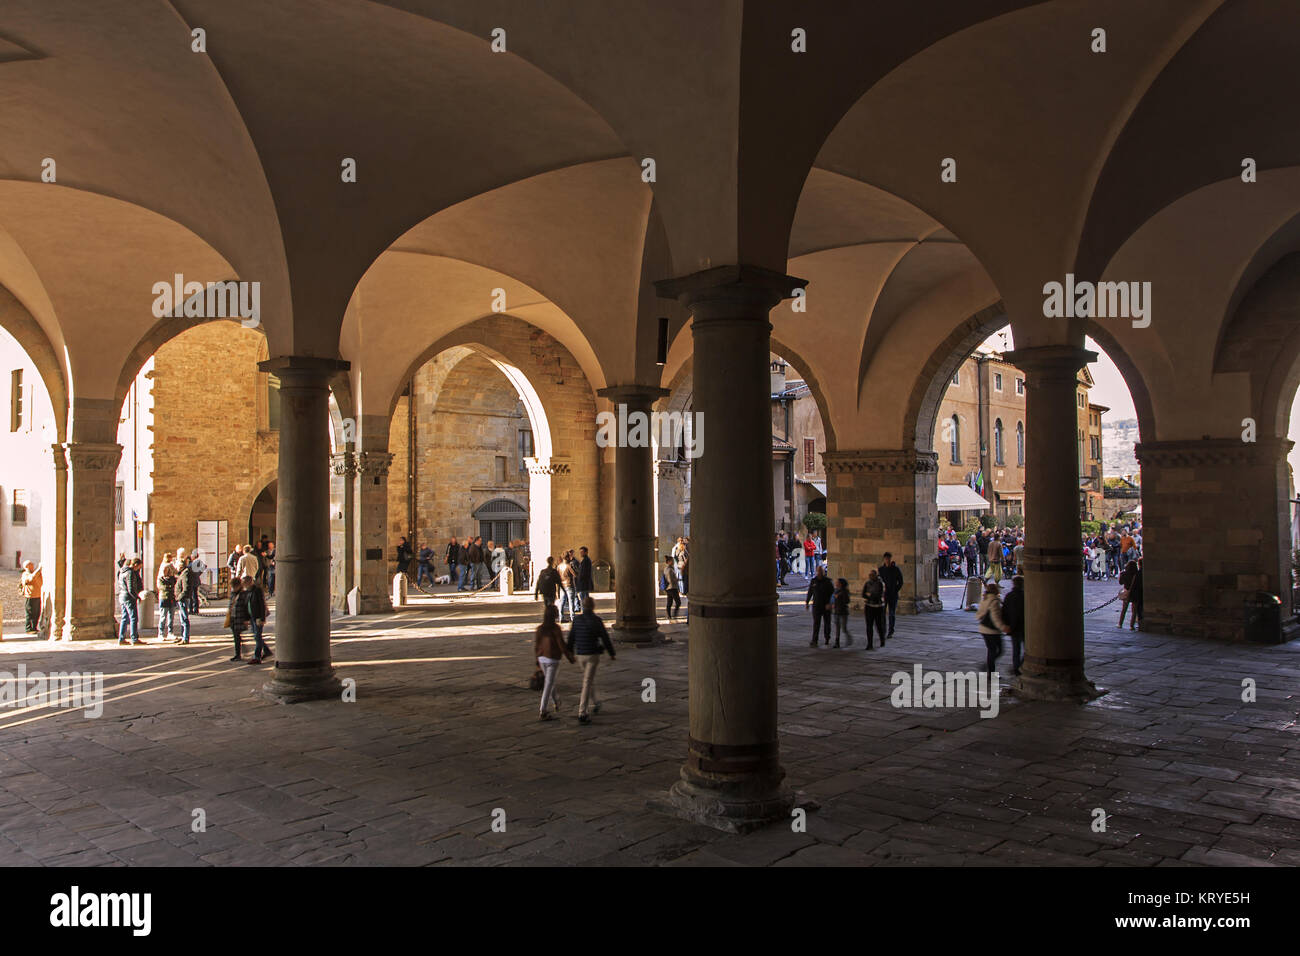 The ancient medieval arcade of Bergamo, upper city - Stock Image